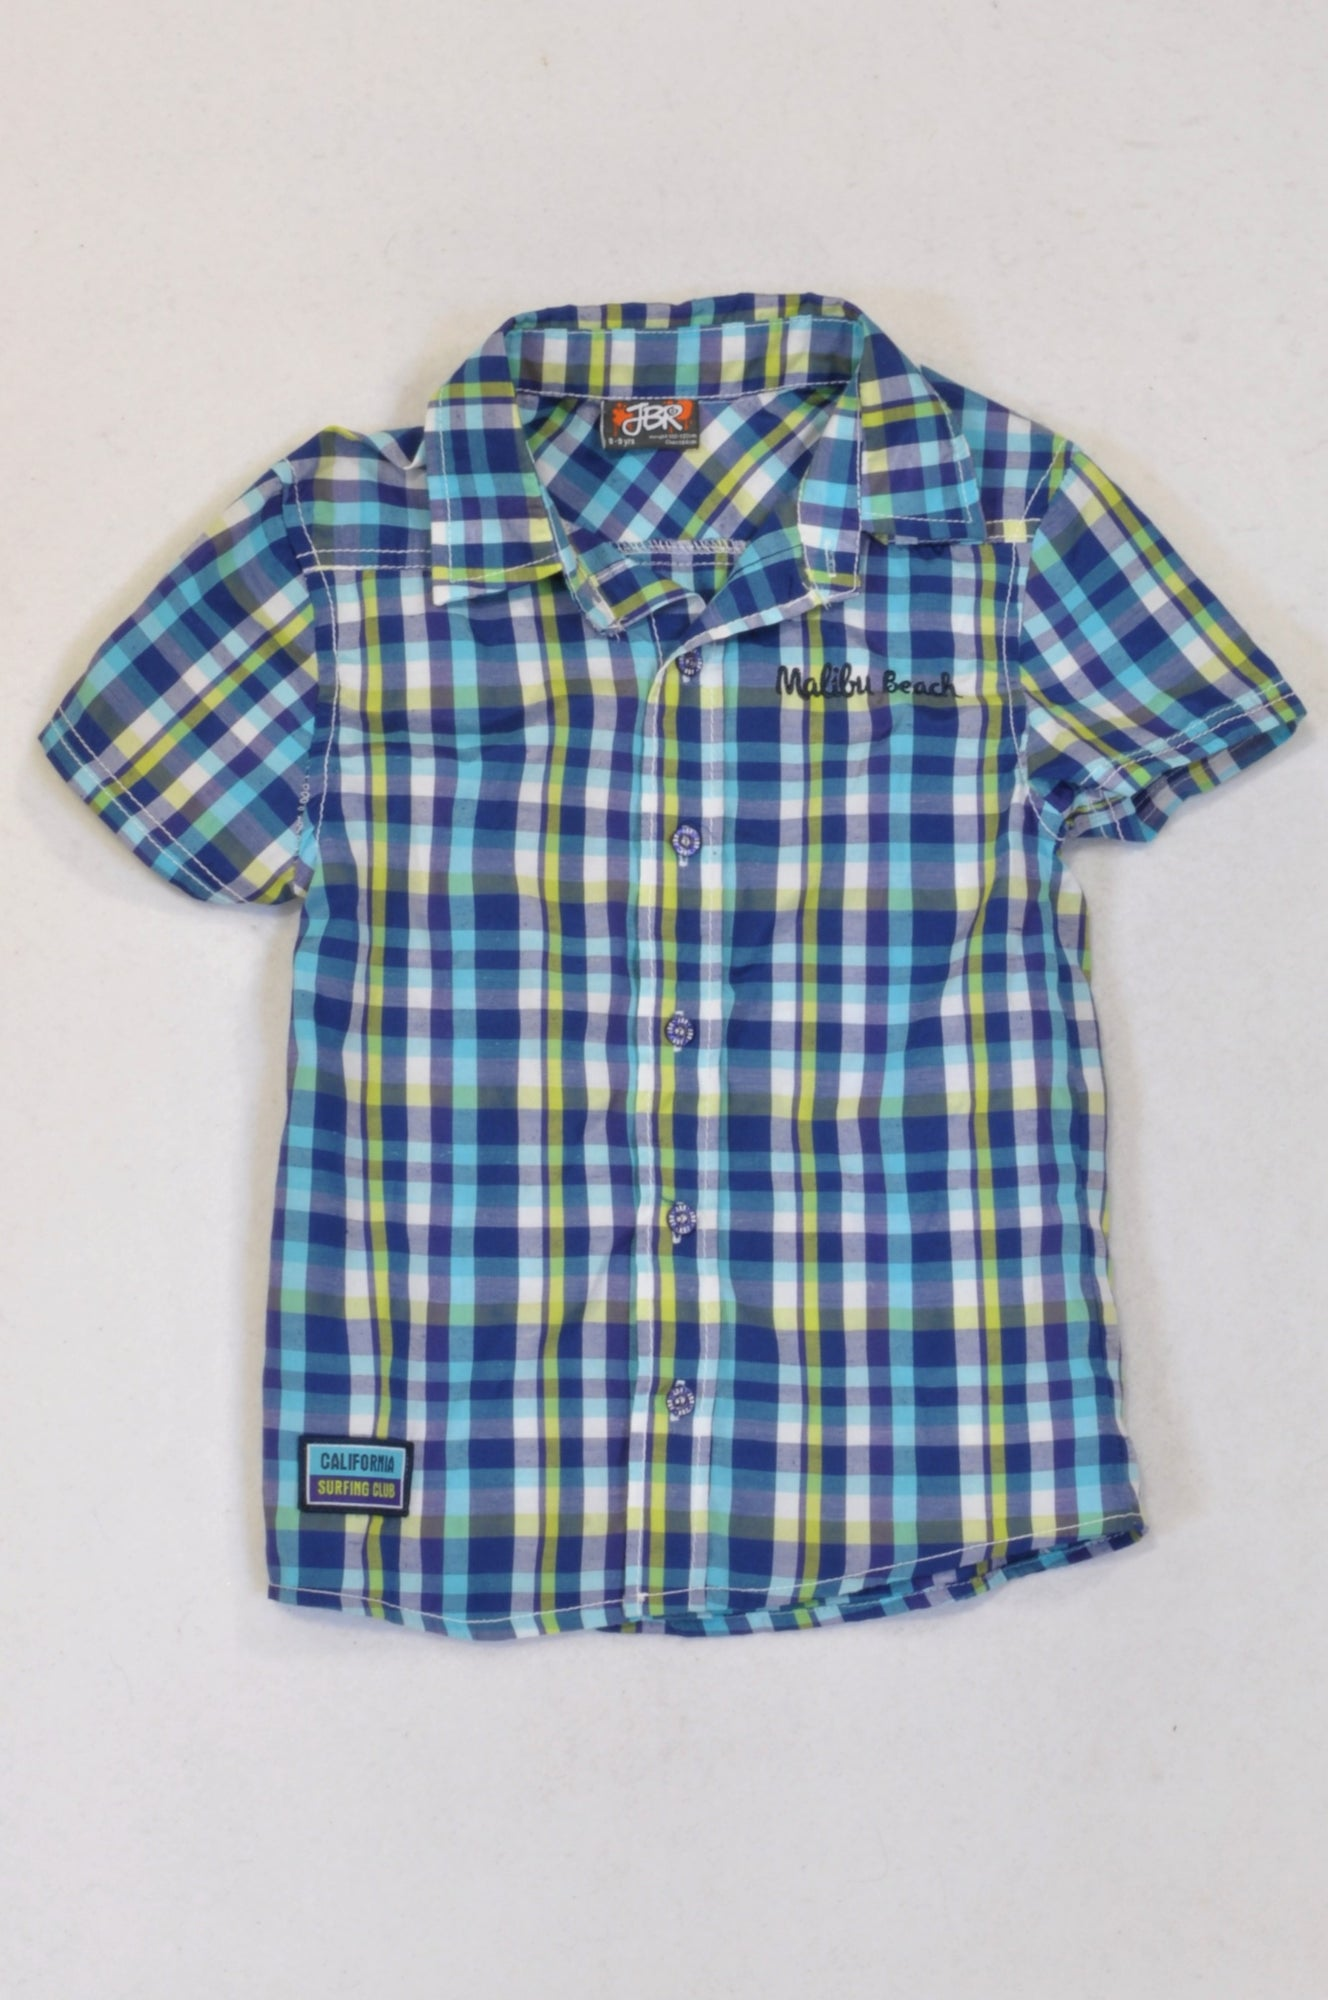 JBR Blue & Green Check malibu Shirt Boys 8-9 years